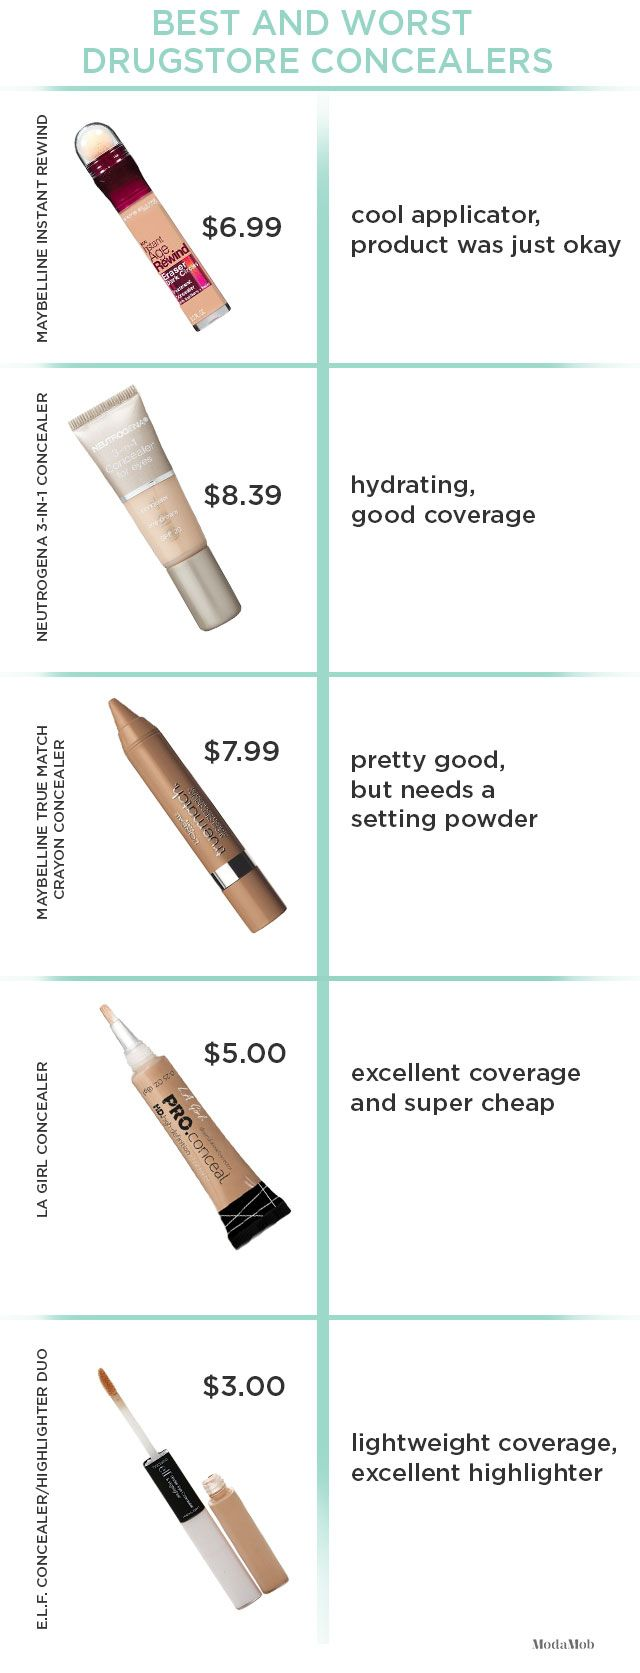 Best and Worst Drugstore Concealers We've Tried | Modamob